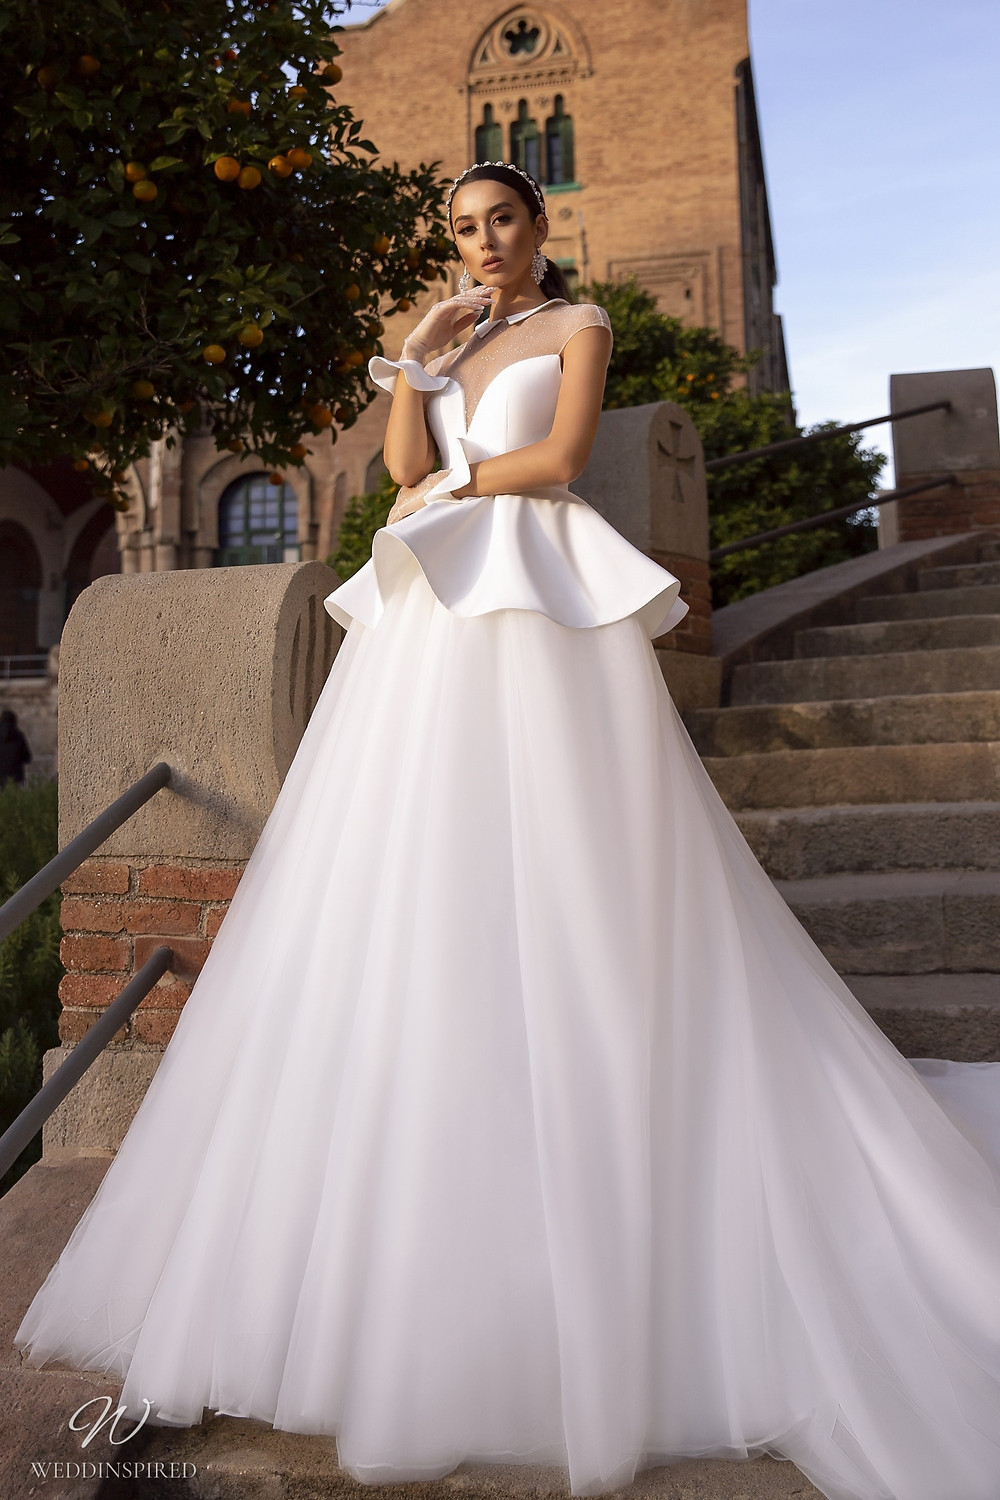 A Maks Mariano tulle ball gown wedding dress with a peplum and an illusion top